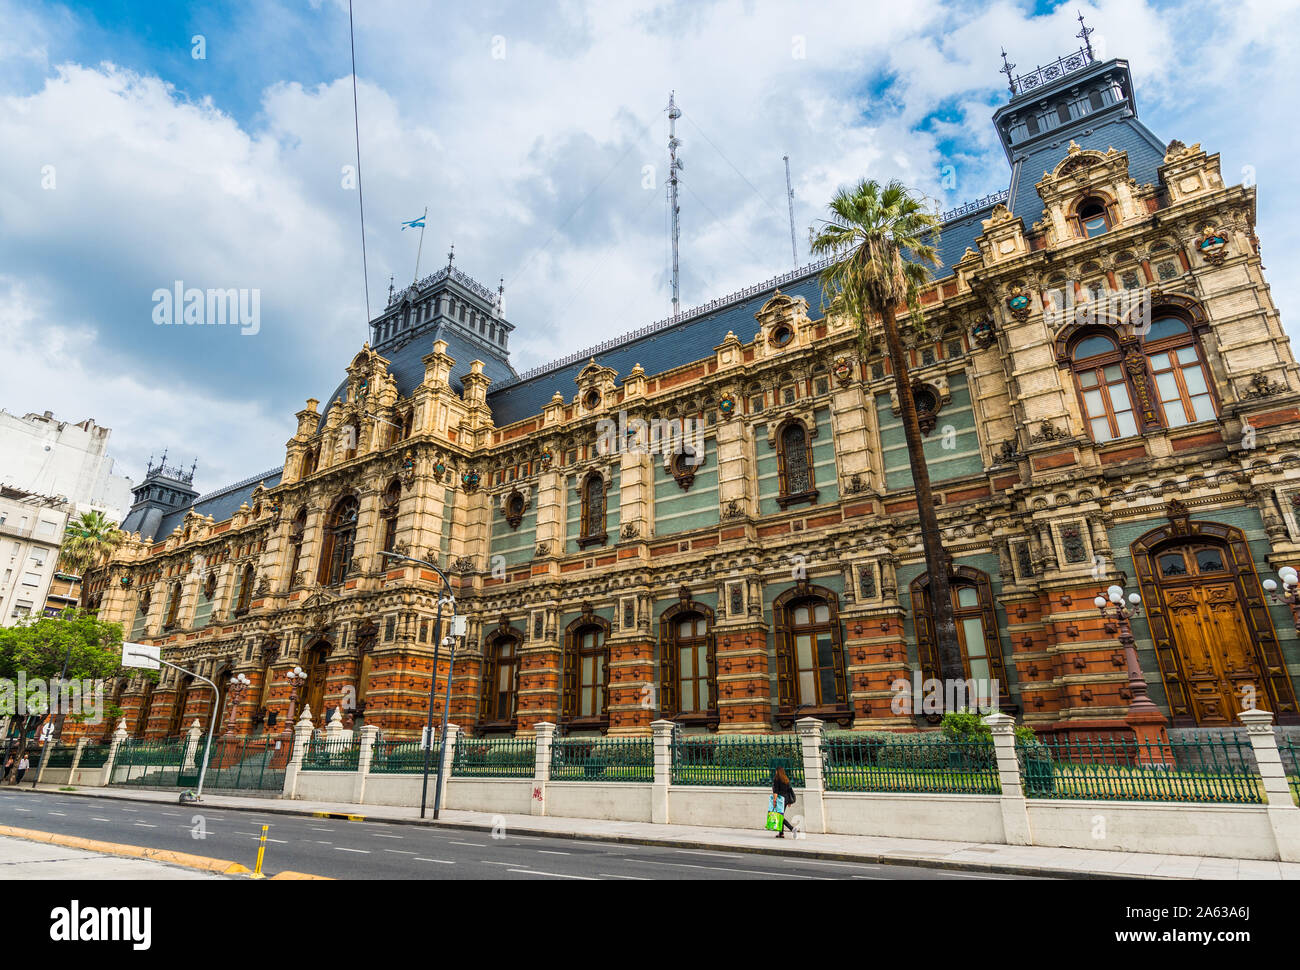 Buenos Aires, Argentina - February 9, 2018: The Water Company Palace building Stock Photo